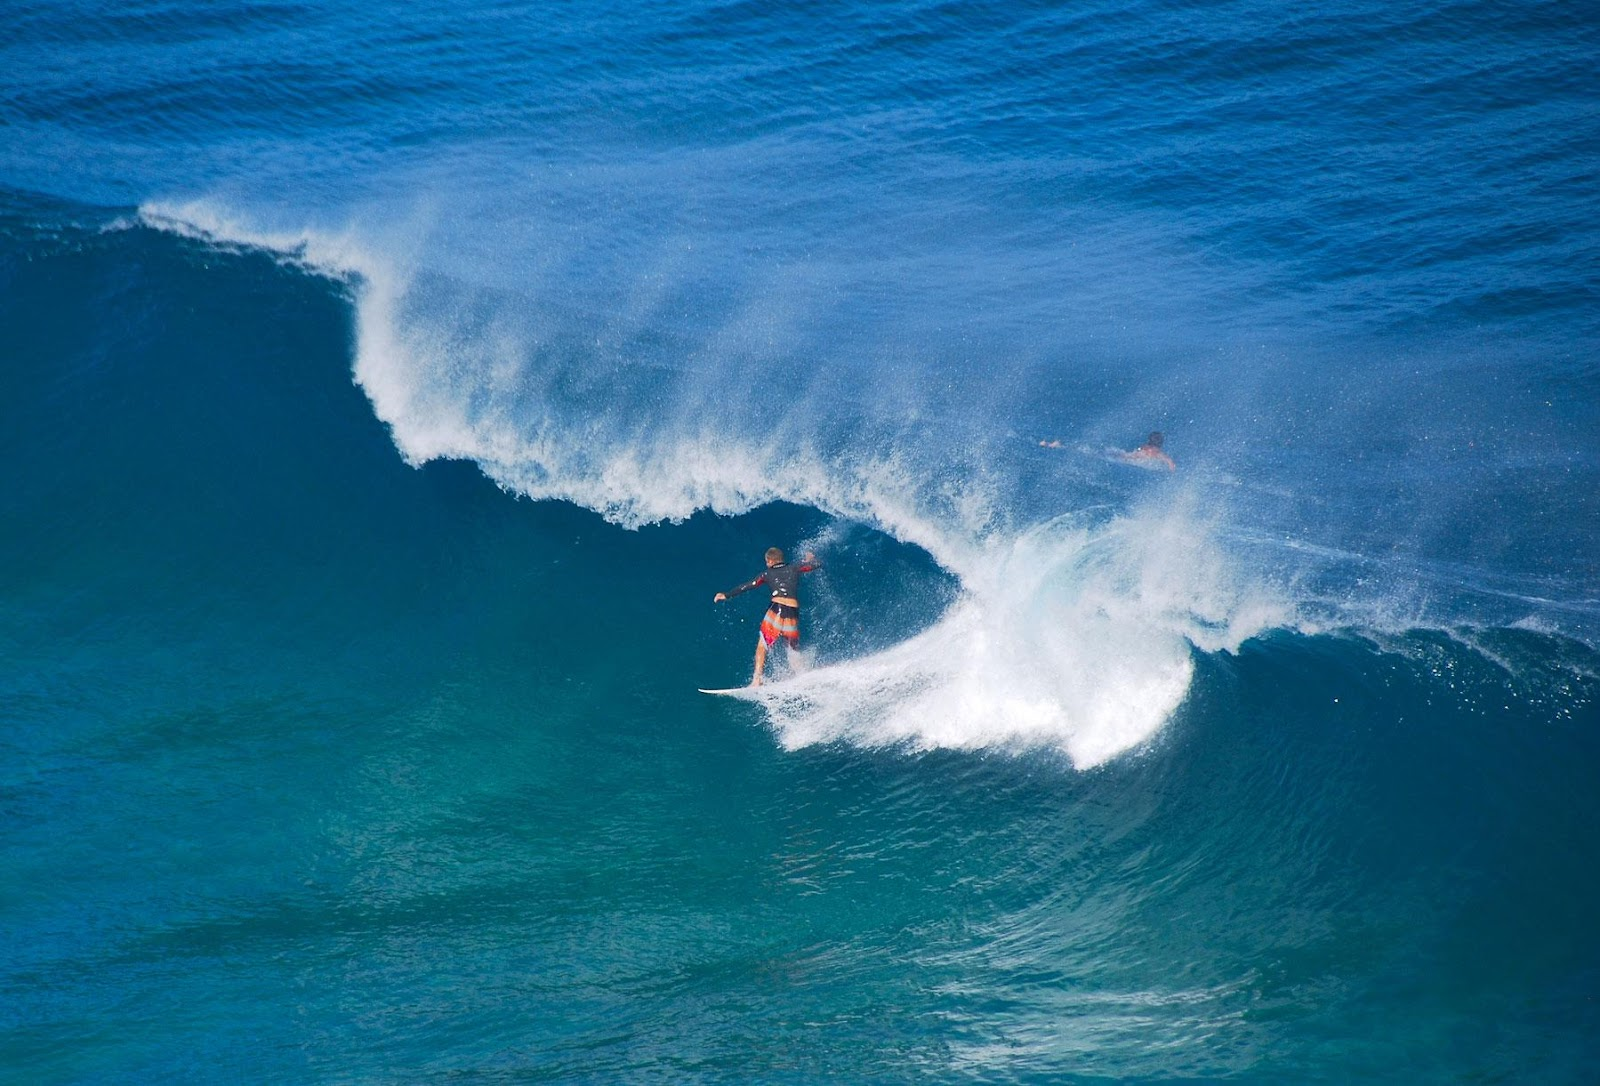 Winter in Hawaii: What to expect